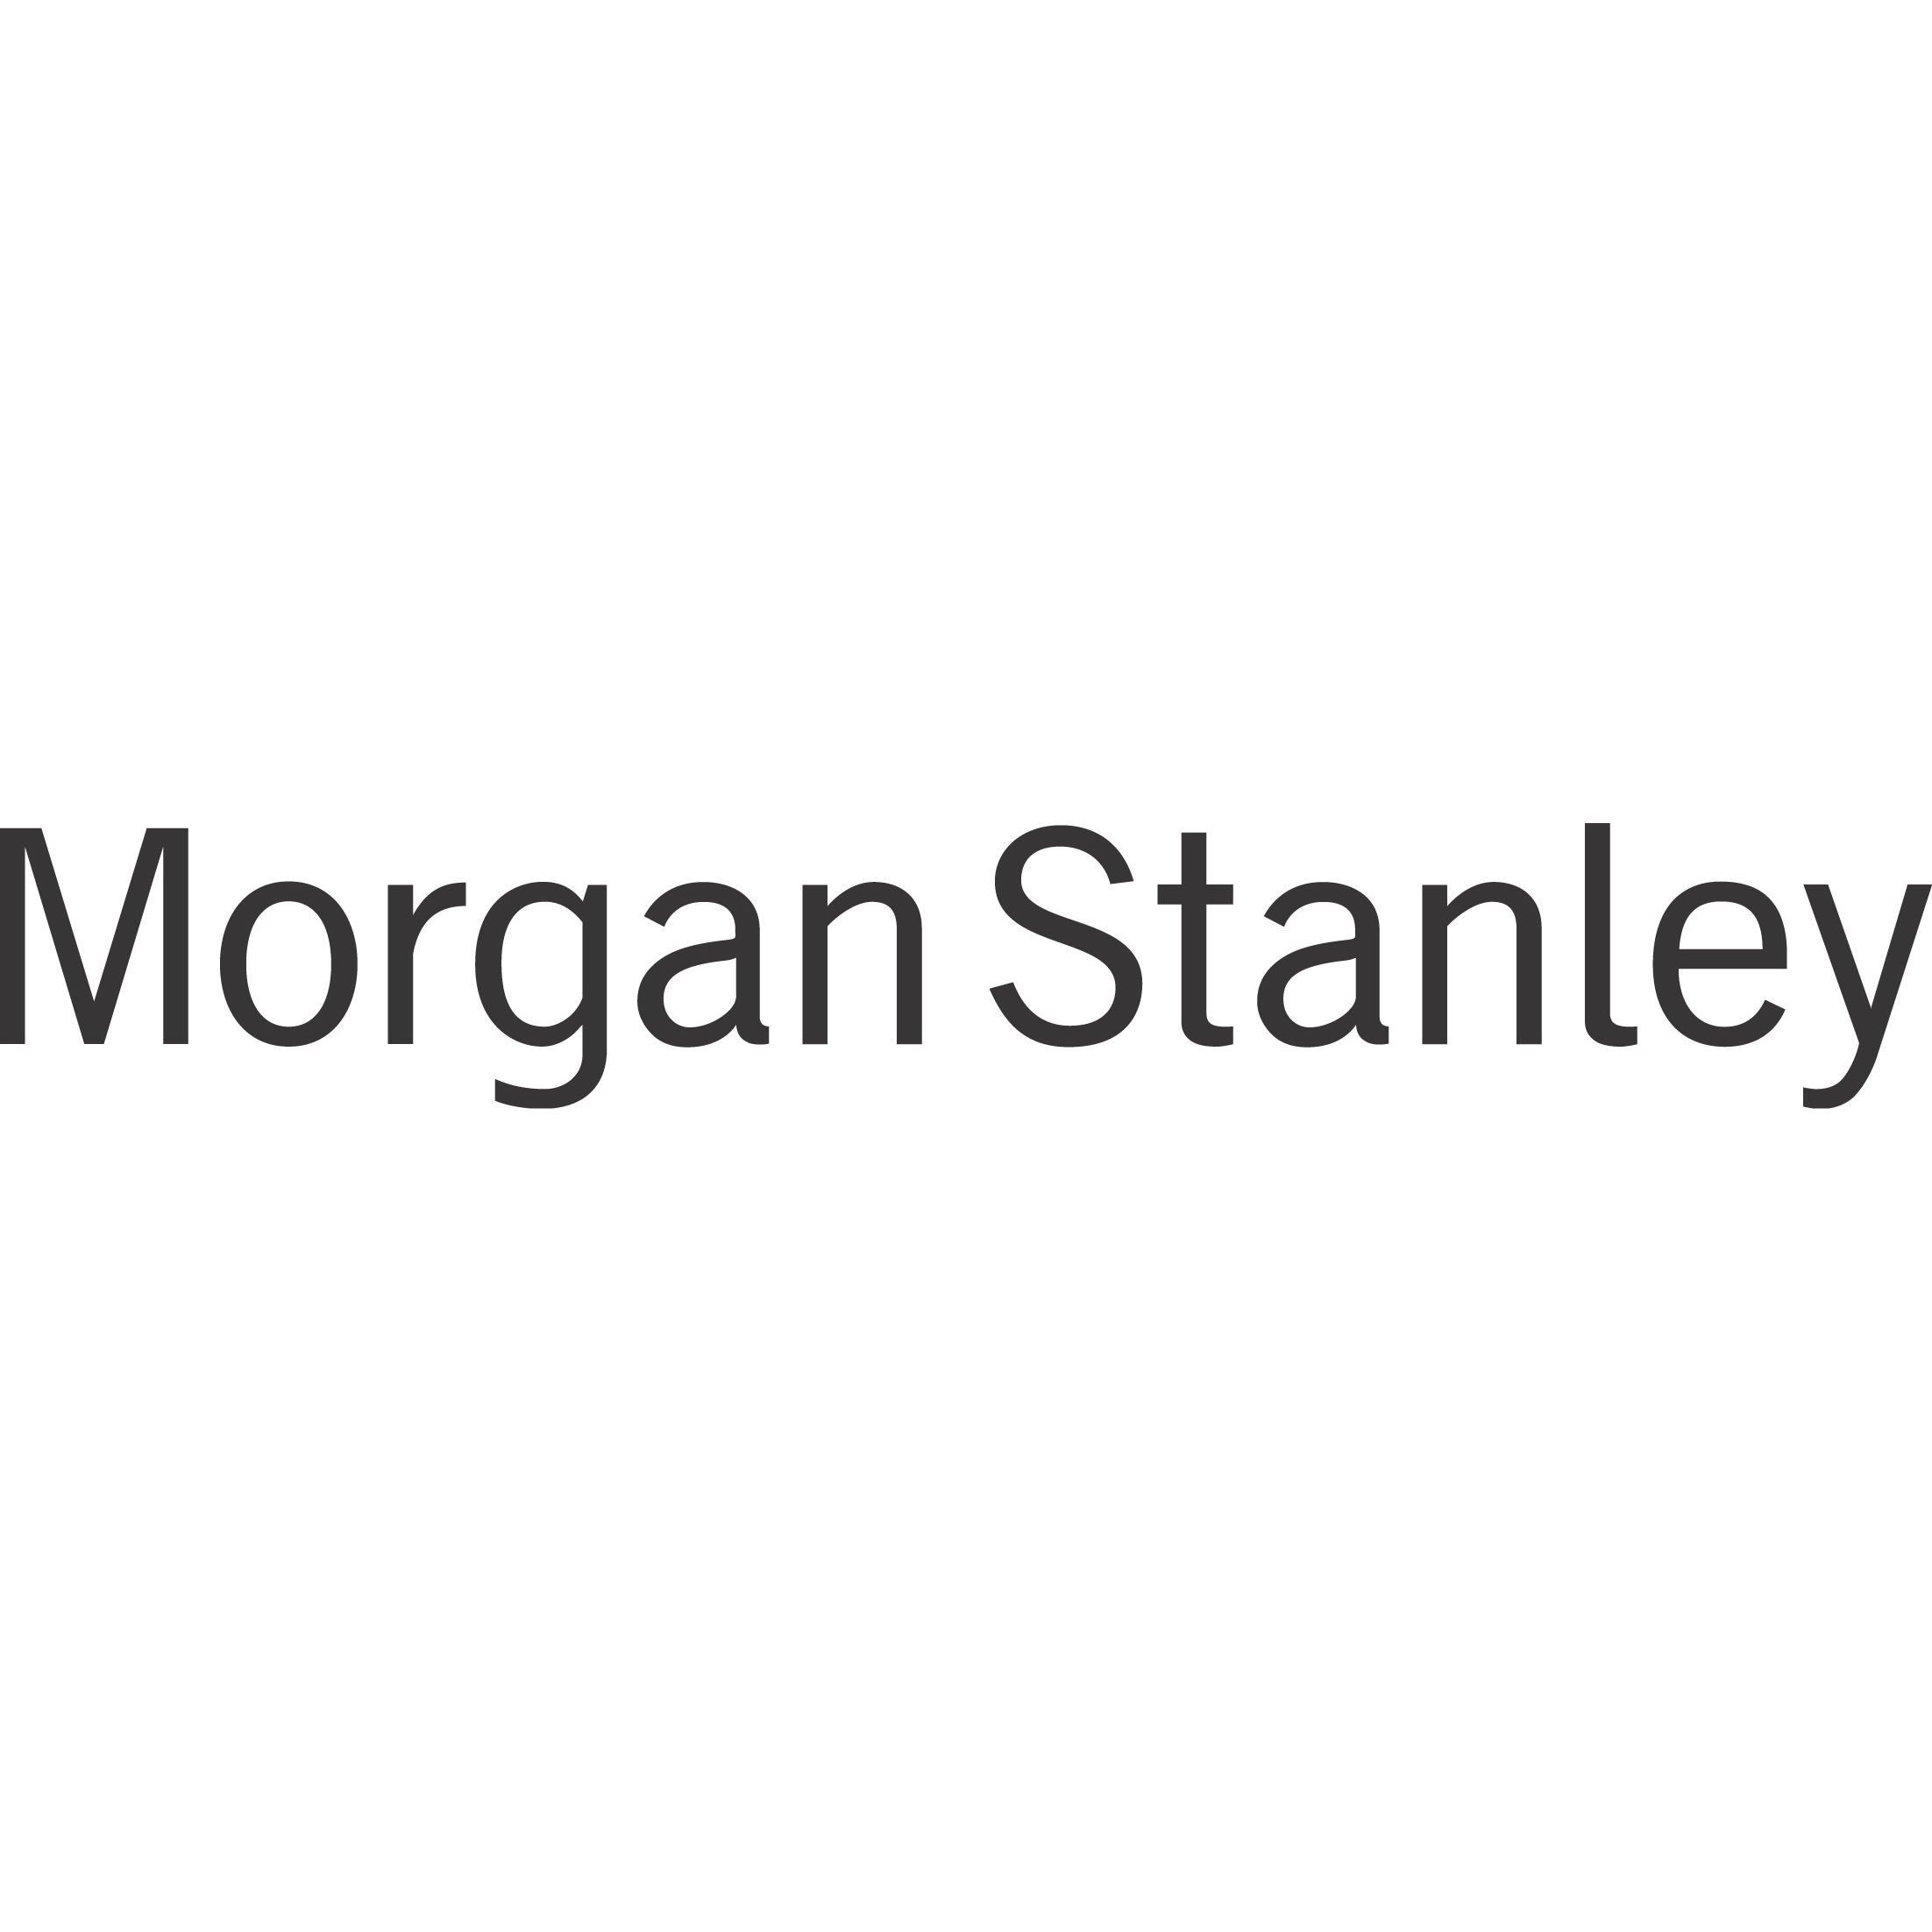 Ray Ortel - Morgan Stanley